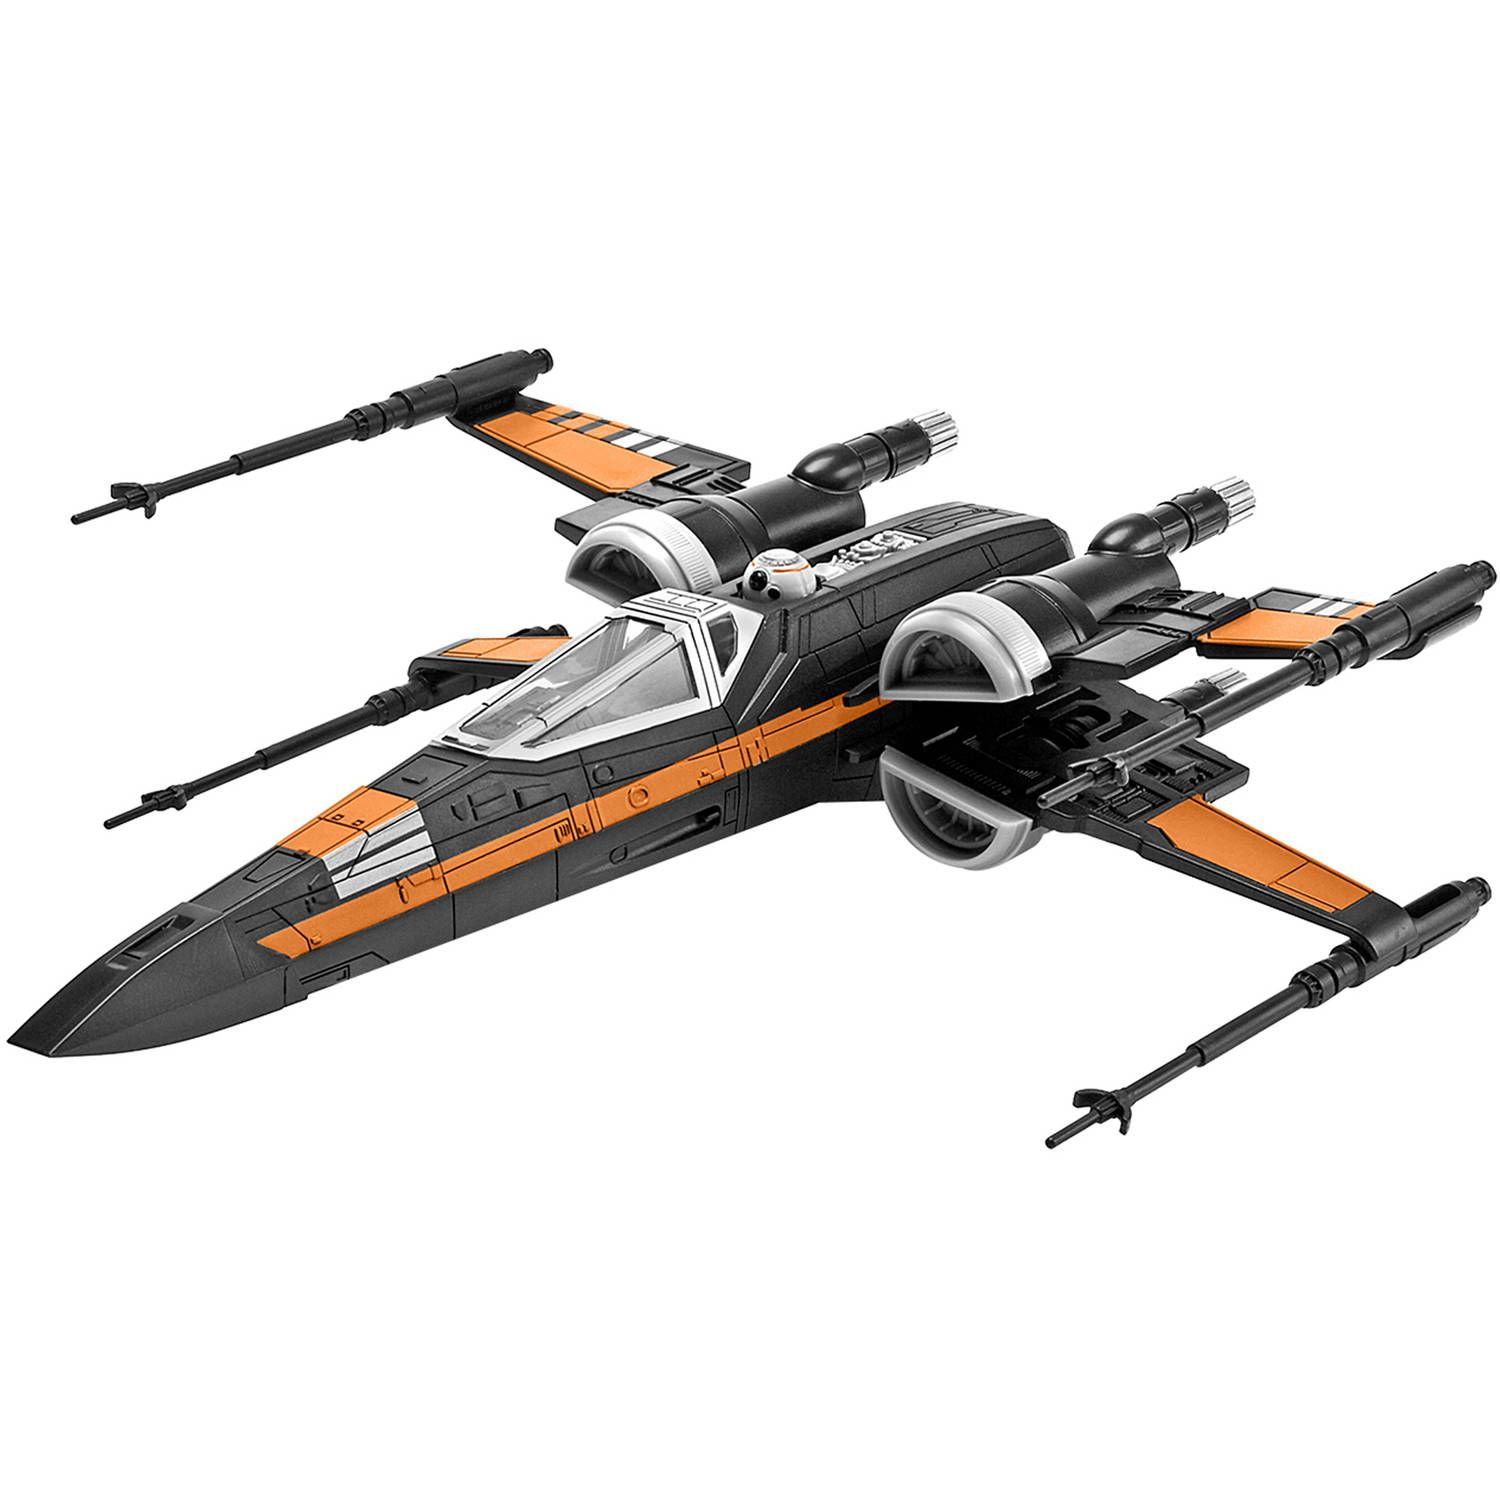 Image Result For X Wing Episode 7 Star Wars Poe X Wing Fighter Star Wars Episodes